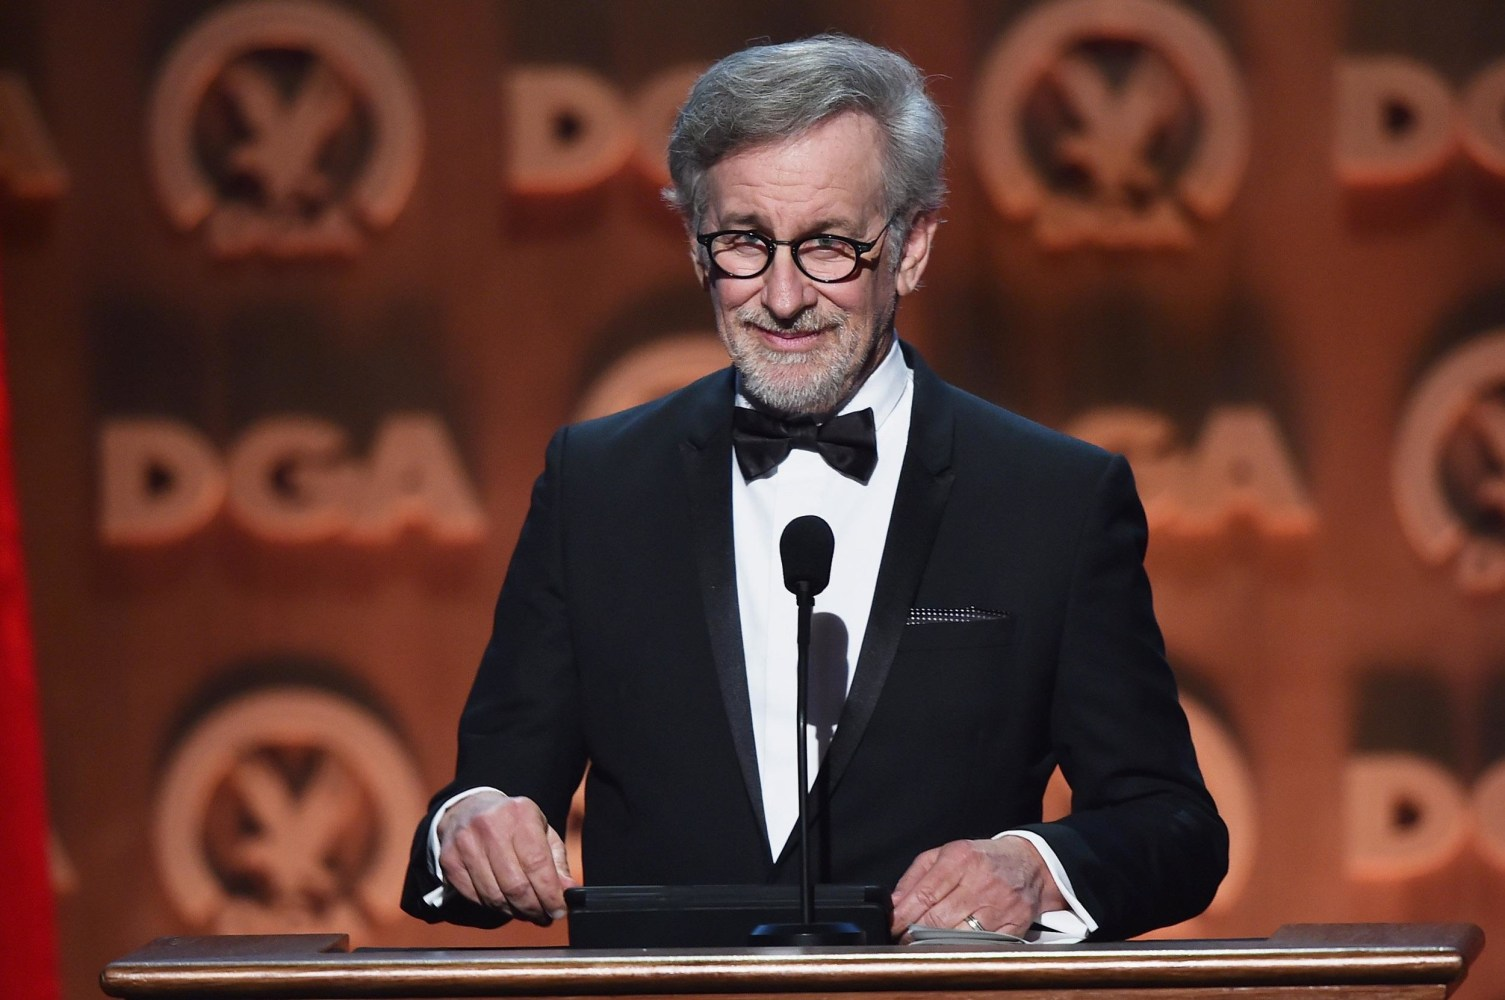 an analysis of a i a film by steven spielberg When it came to steven spielberg's 2001 sci-fi film, ai: artificial intelligence, jeanine salla played a low-profile yet important role educated at bangalore university, salla was an expert in.